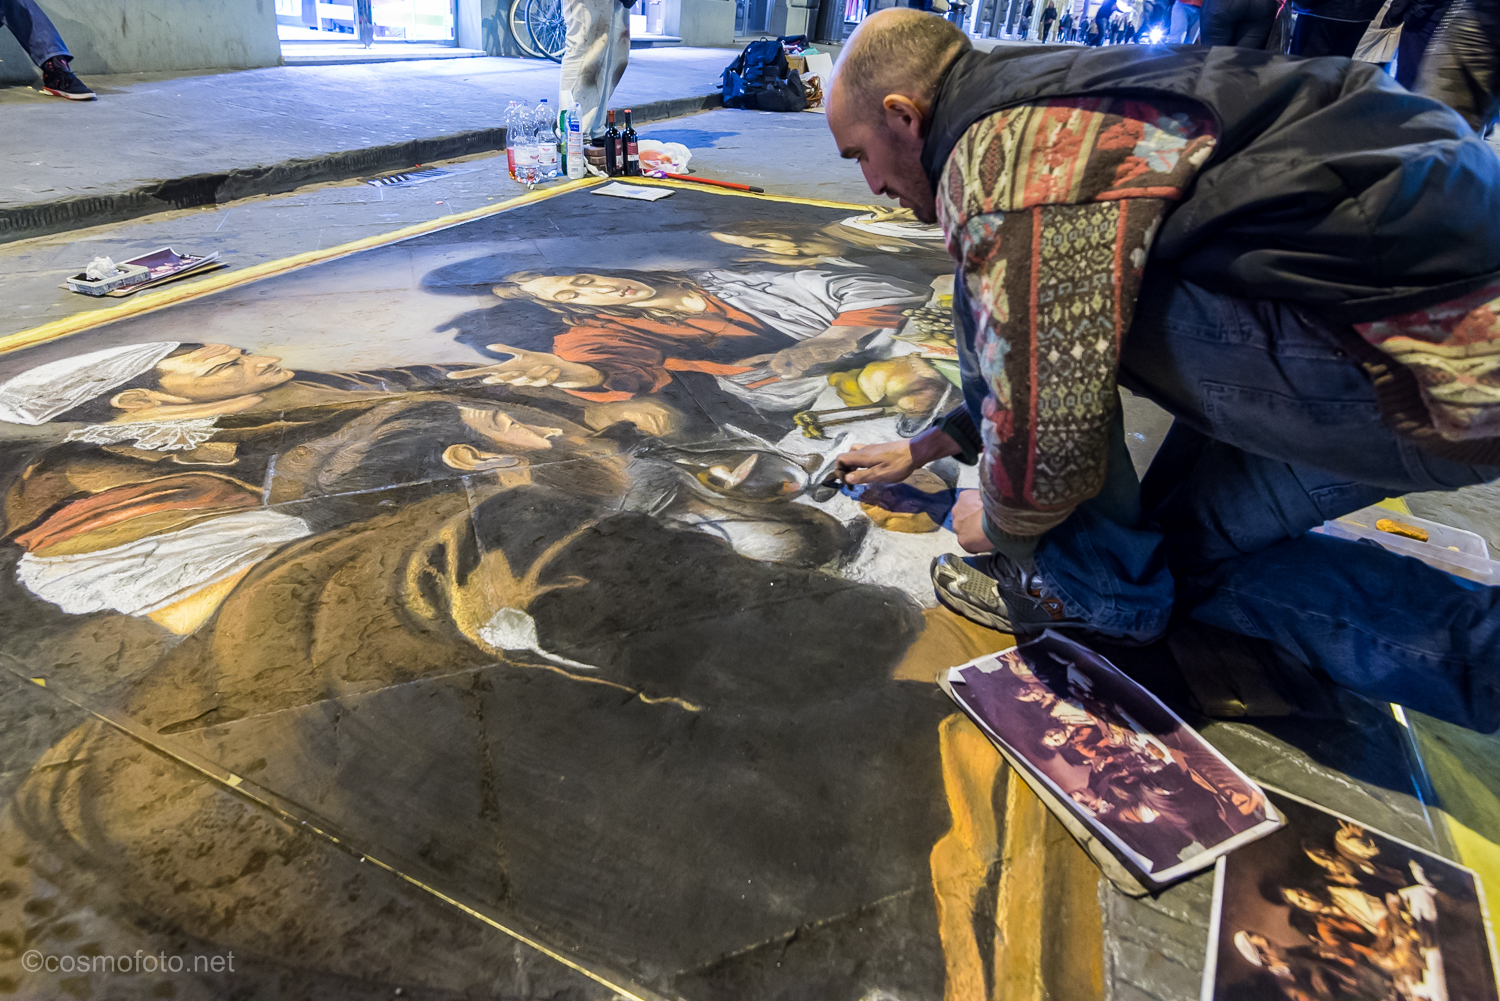 A street artist at work late at night